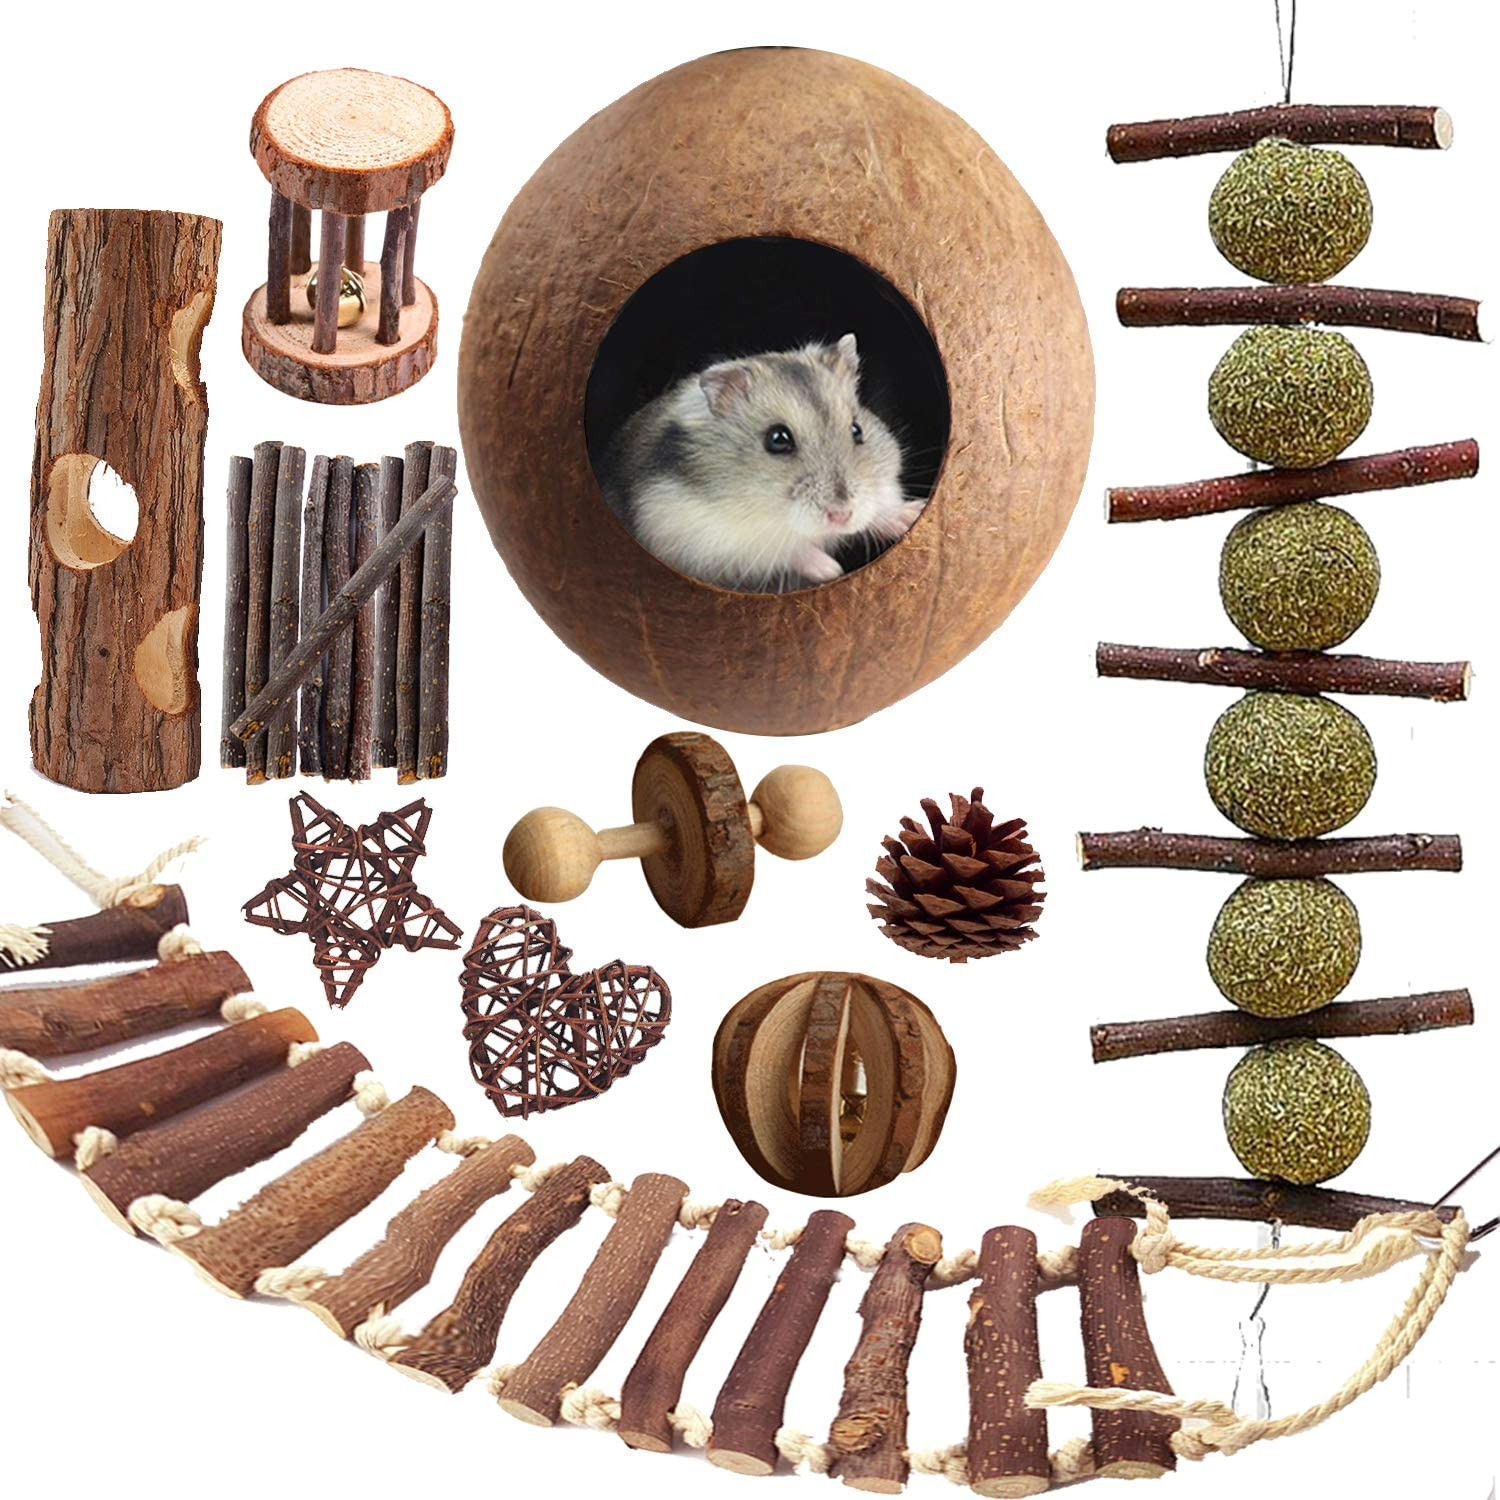 Mynest Hamster Chew Toys 20pcs Natural Wooden Pine Mouse Toys,Bell Roller, Bell Ball, Unicycle, Coconut Shell, Tunnel, Pet Tooth Chew Molar String, Guinea Pigs Rats Chinchillas Toys